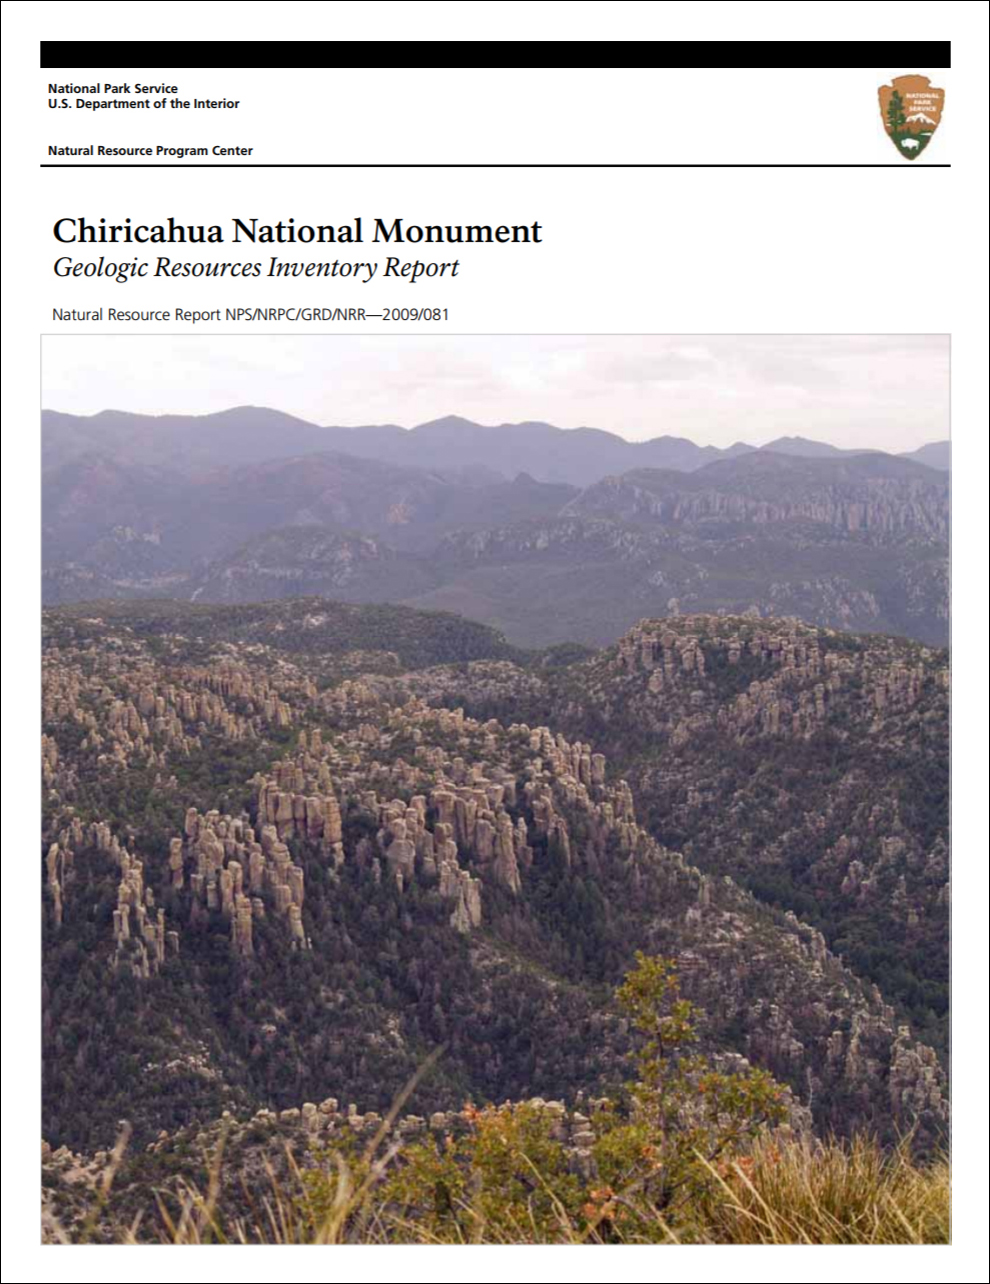 What is the reserve and national parks General characteristics and distinctive features